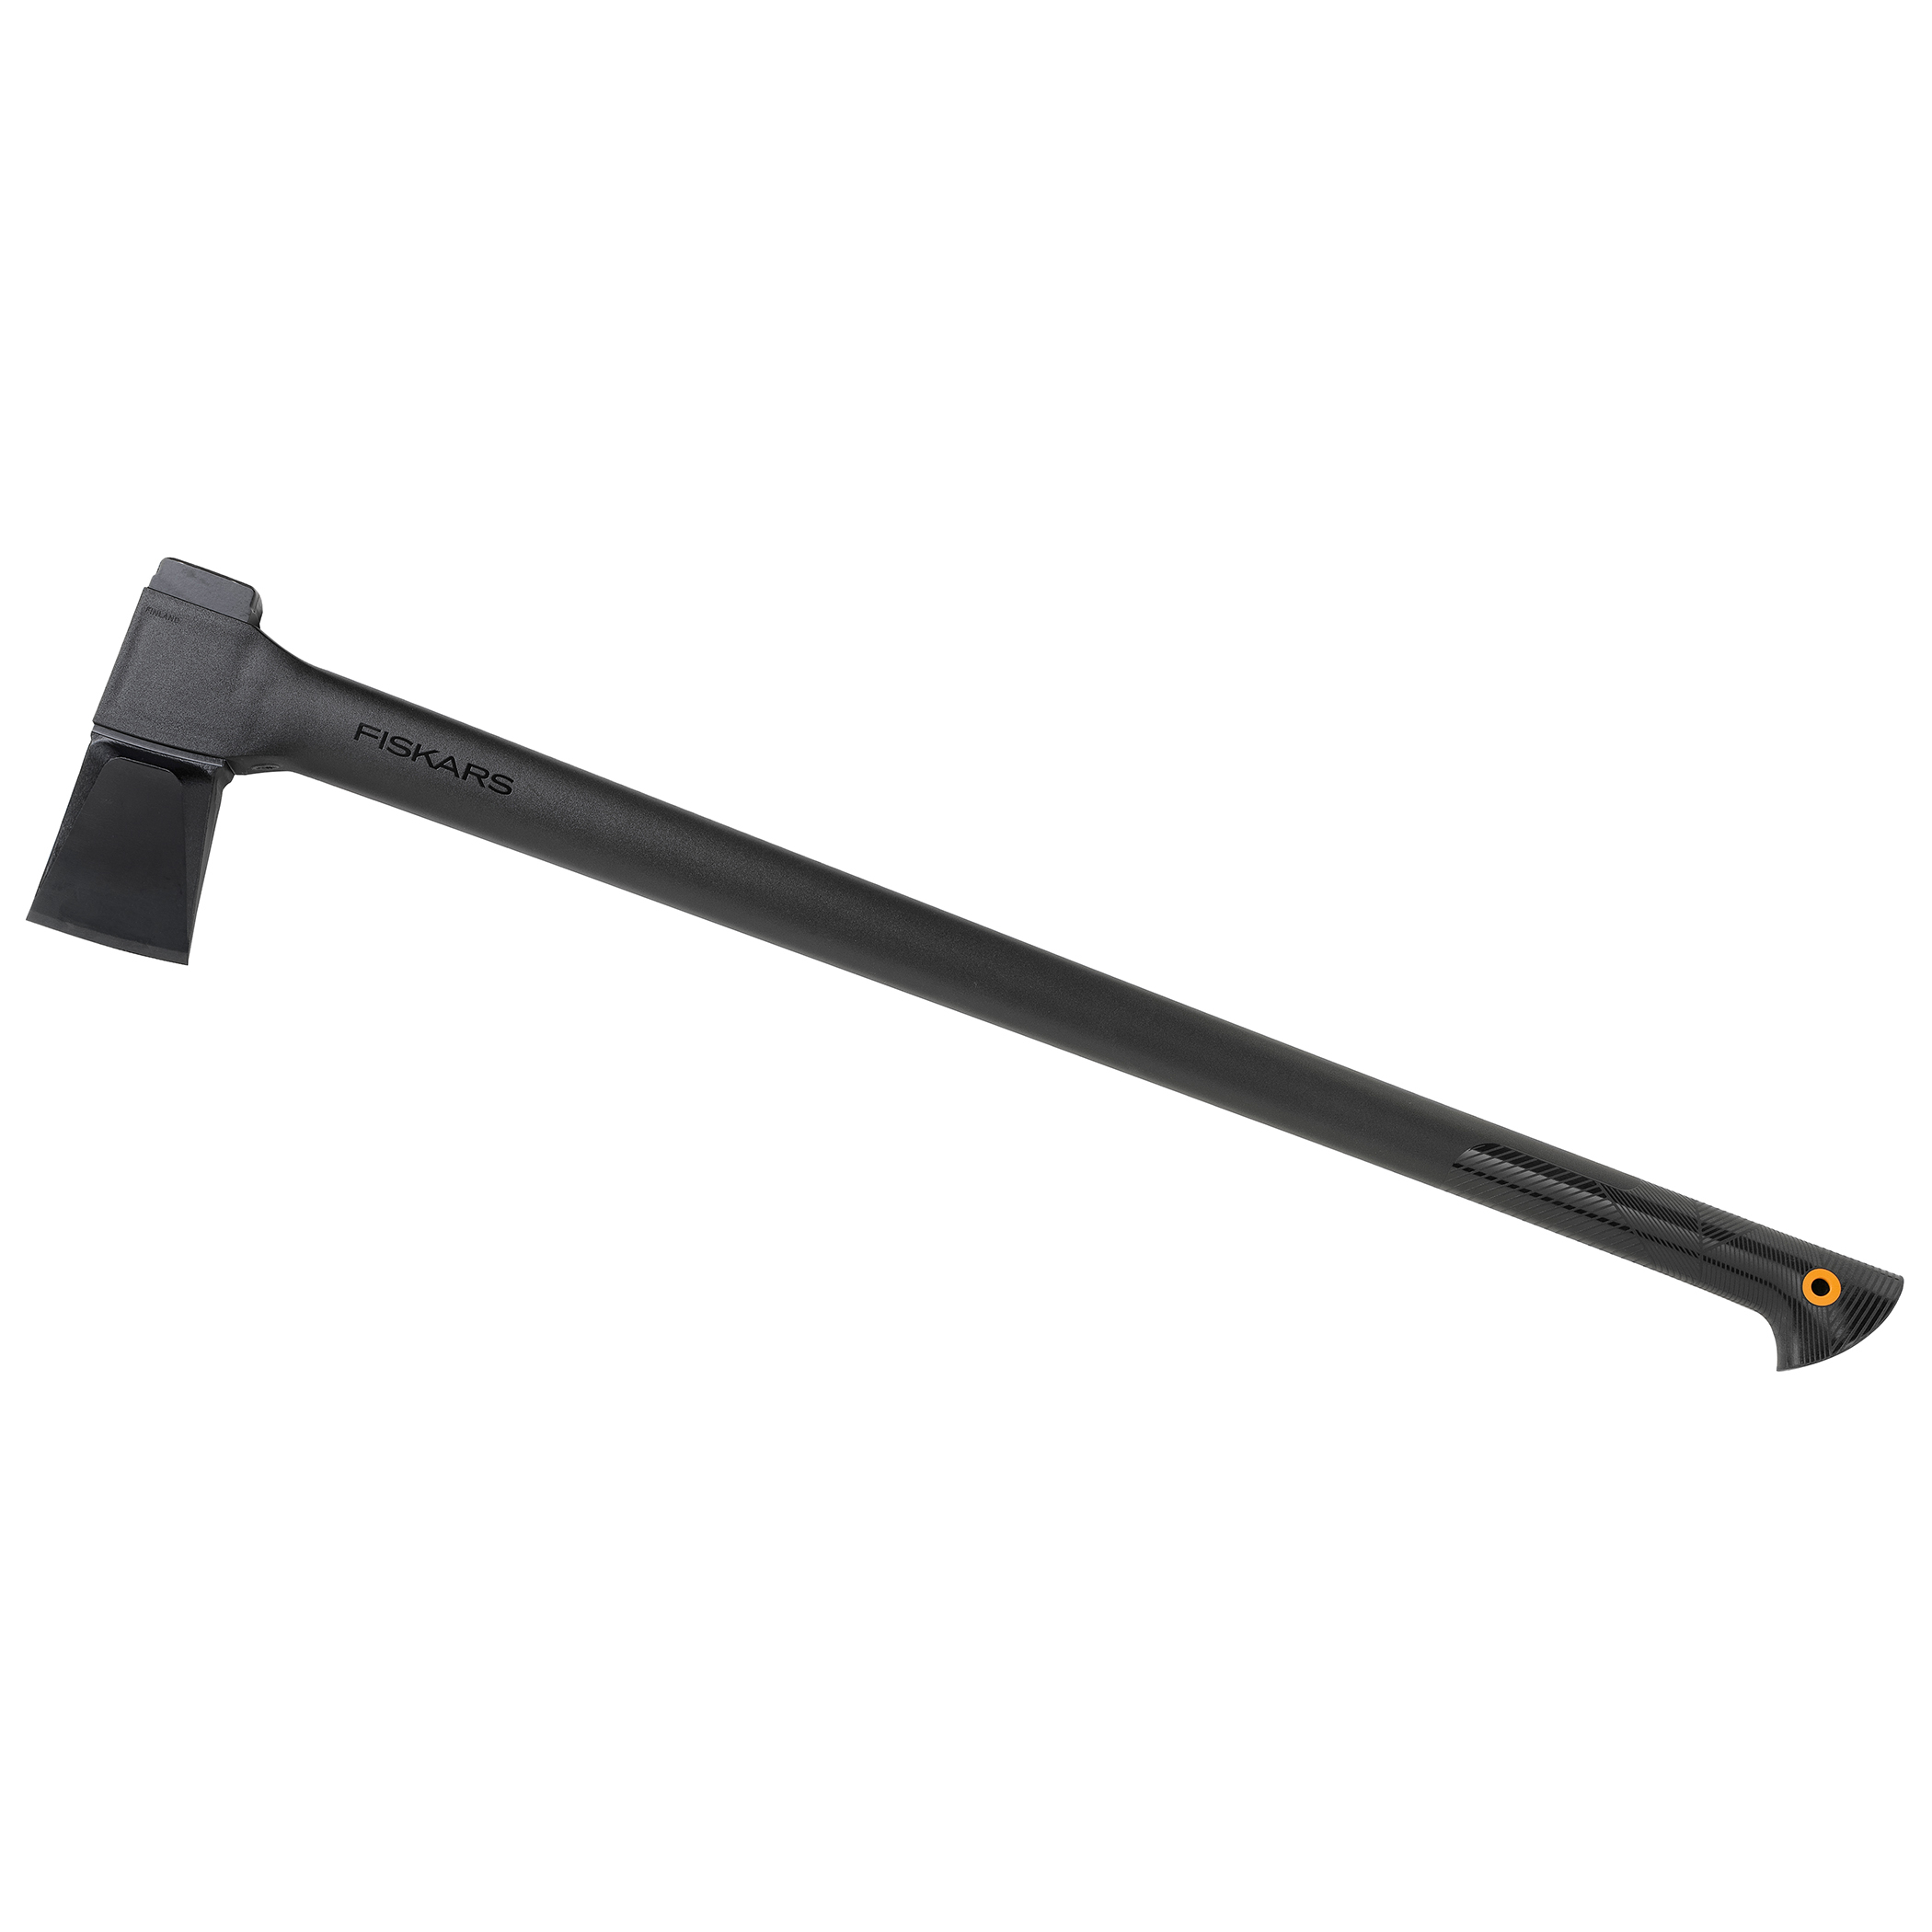 "Fiskars 375841-1001 36"" Steel Super Splitting Axe by FISKARS BRAND INC L G"